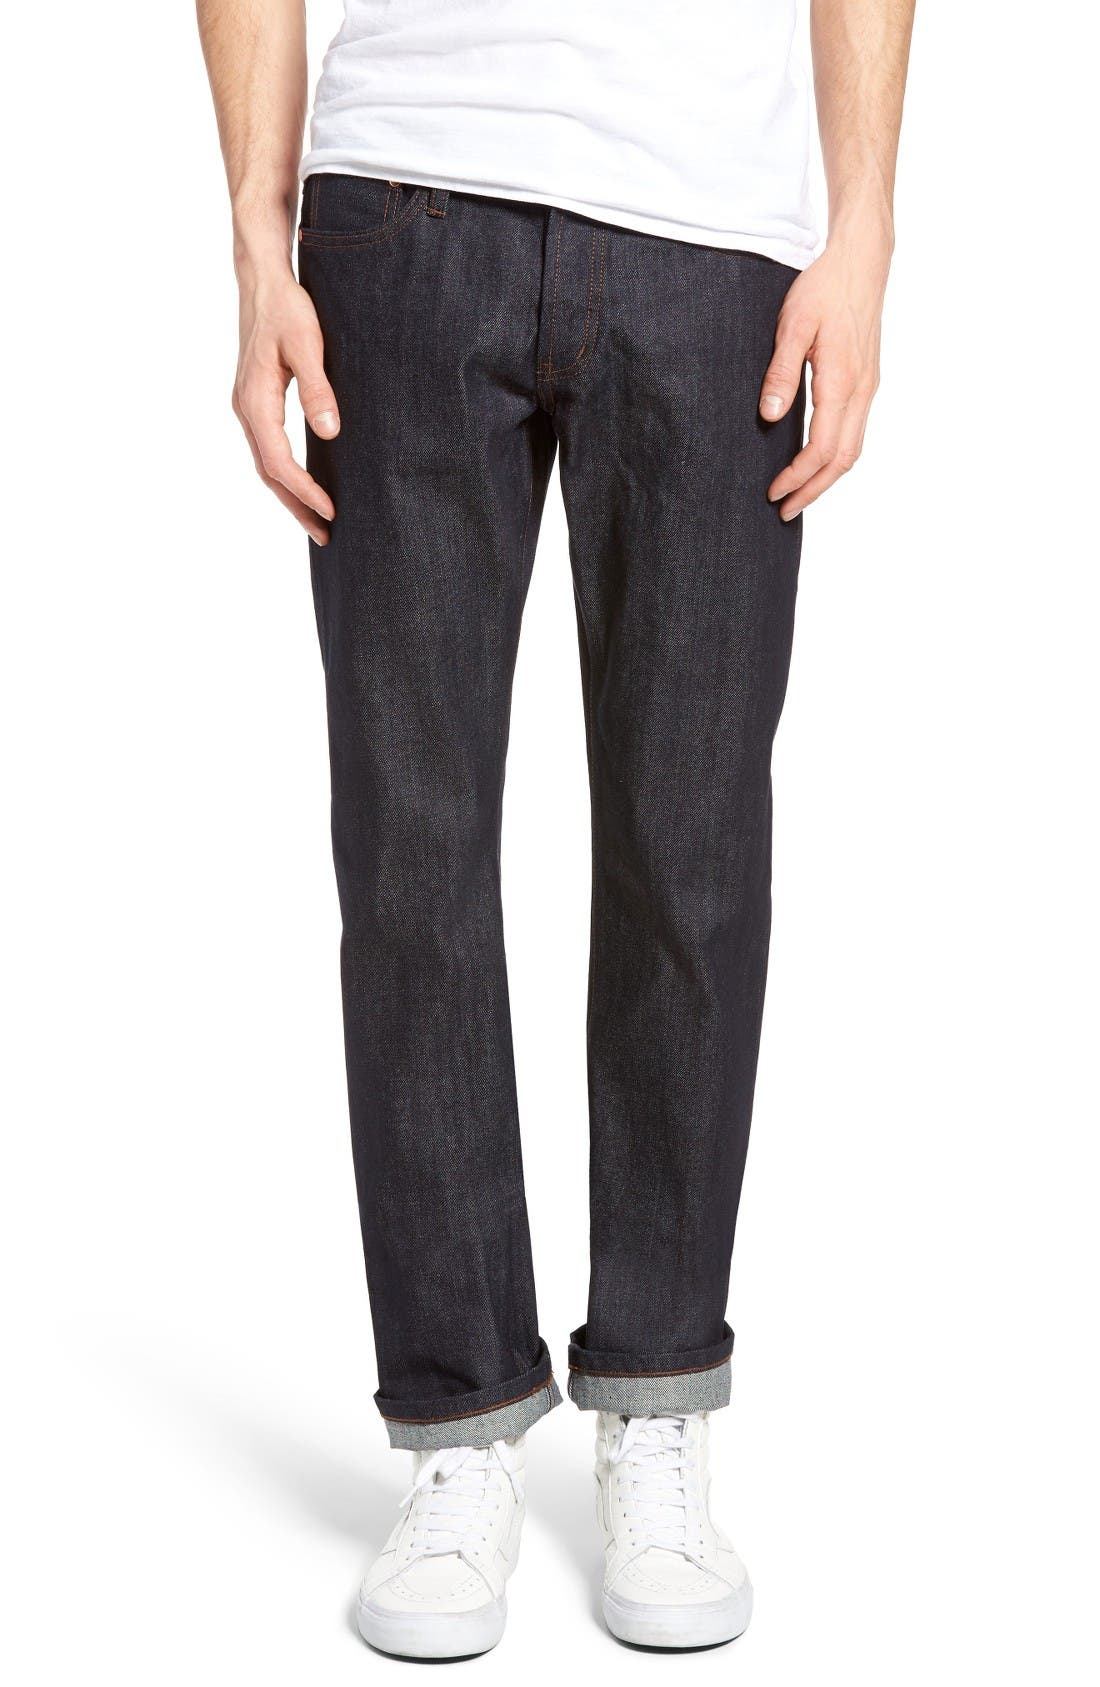 Alternate Image 1 Selected - The Unbranded Brand UB301 Straight Leg Raw Selvedge Jeans (Indigo)